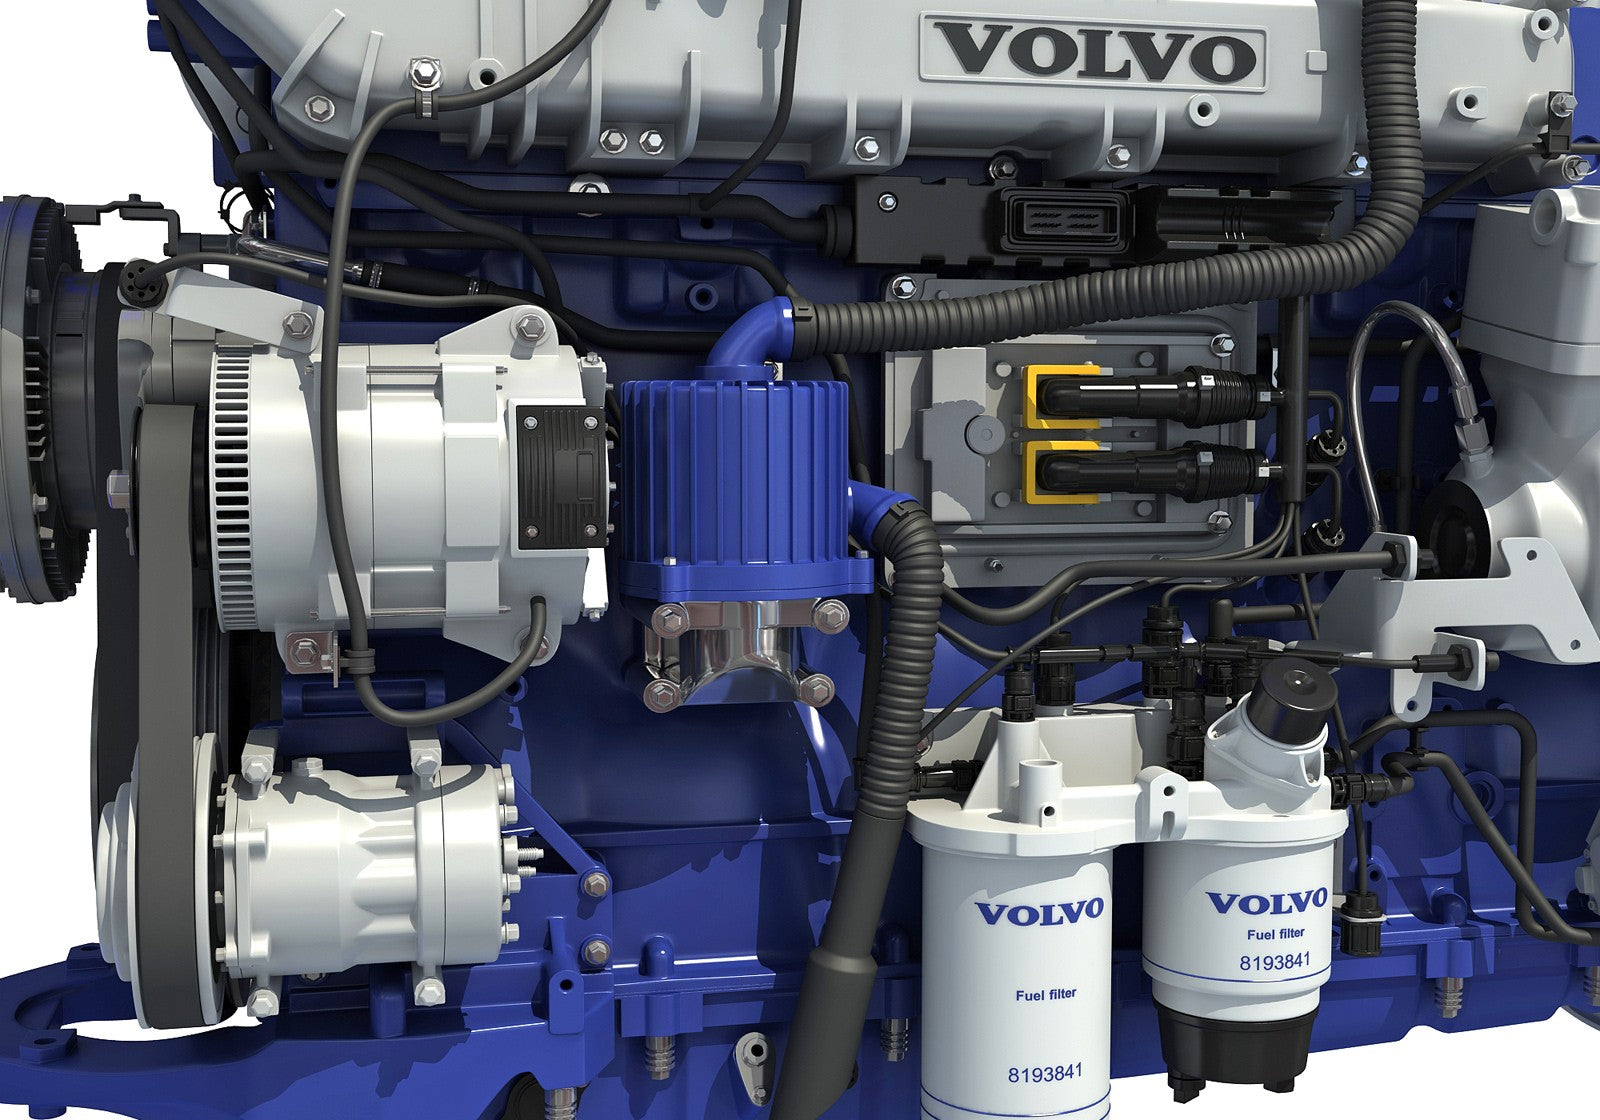 Volvo D13 Fuel Filters Engine Model Horse 1600x1120